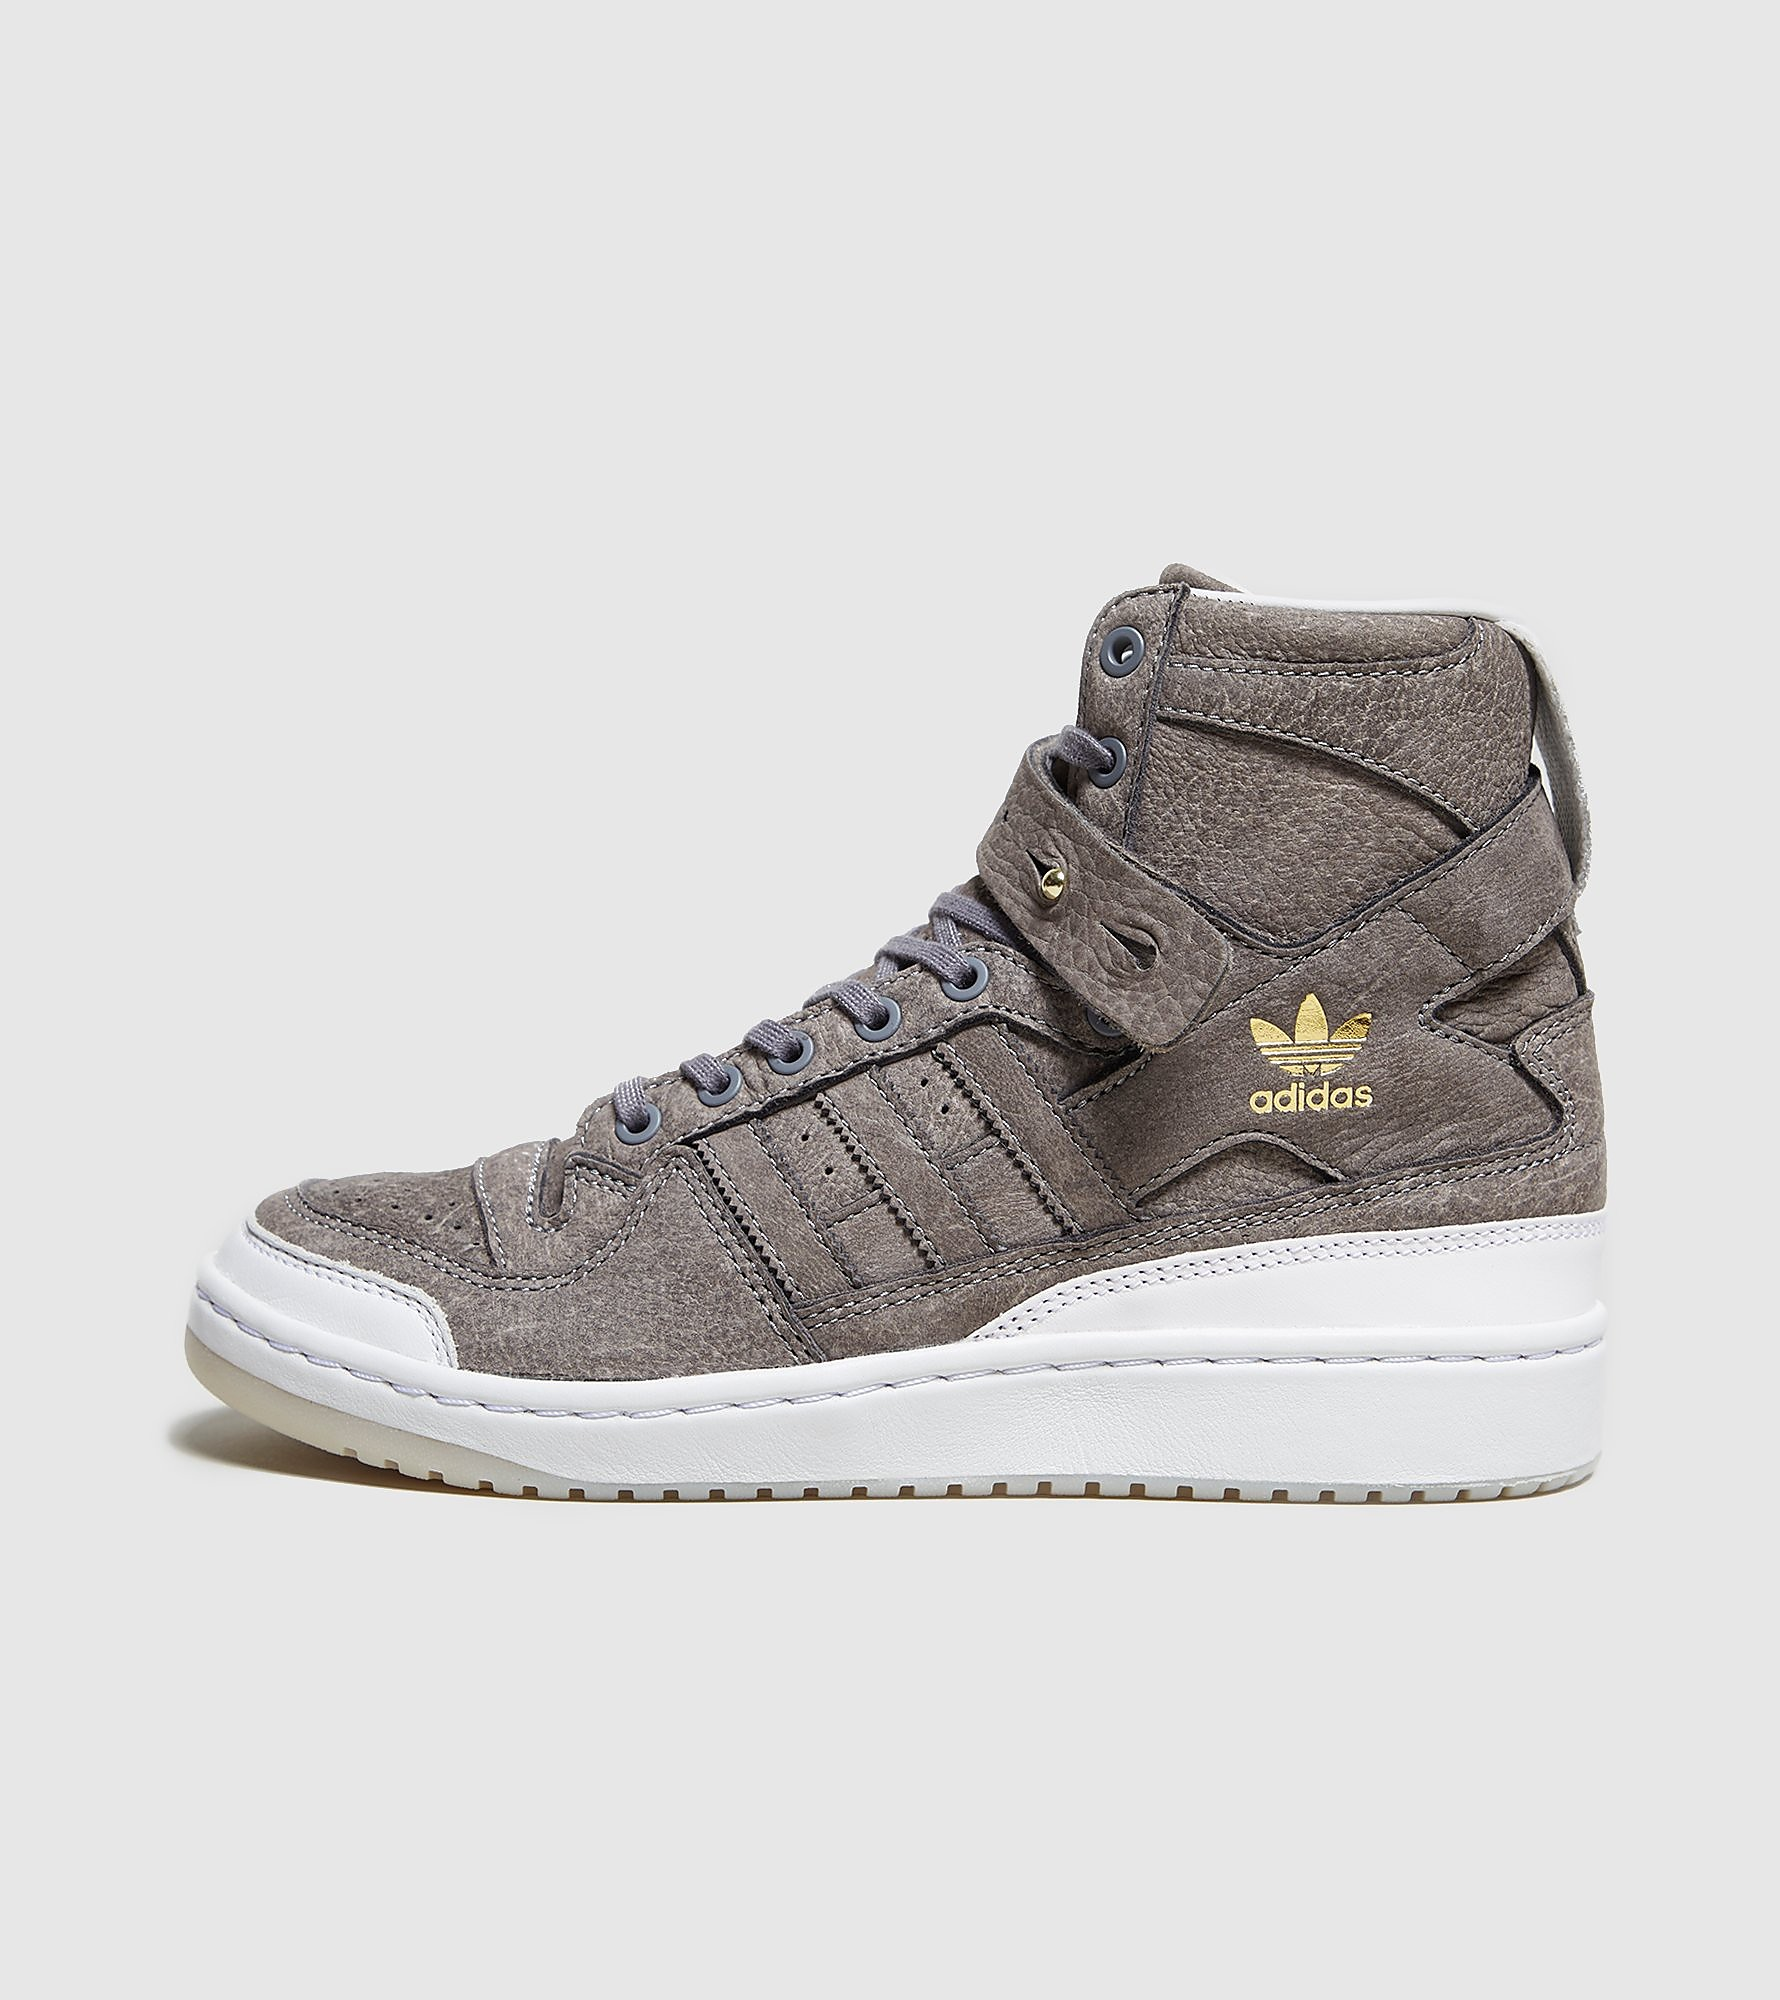 adidas Originals Forum Hi Crafted